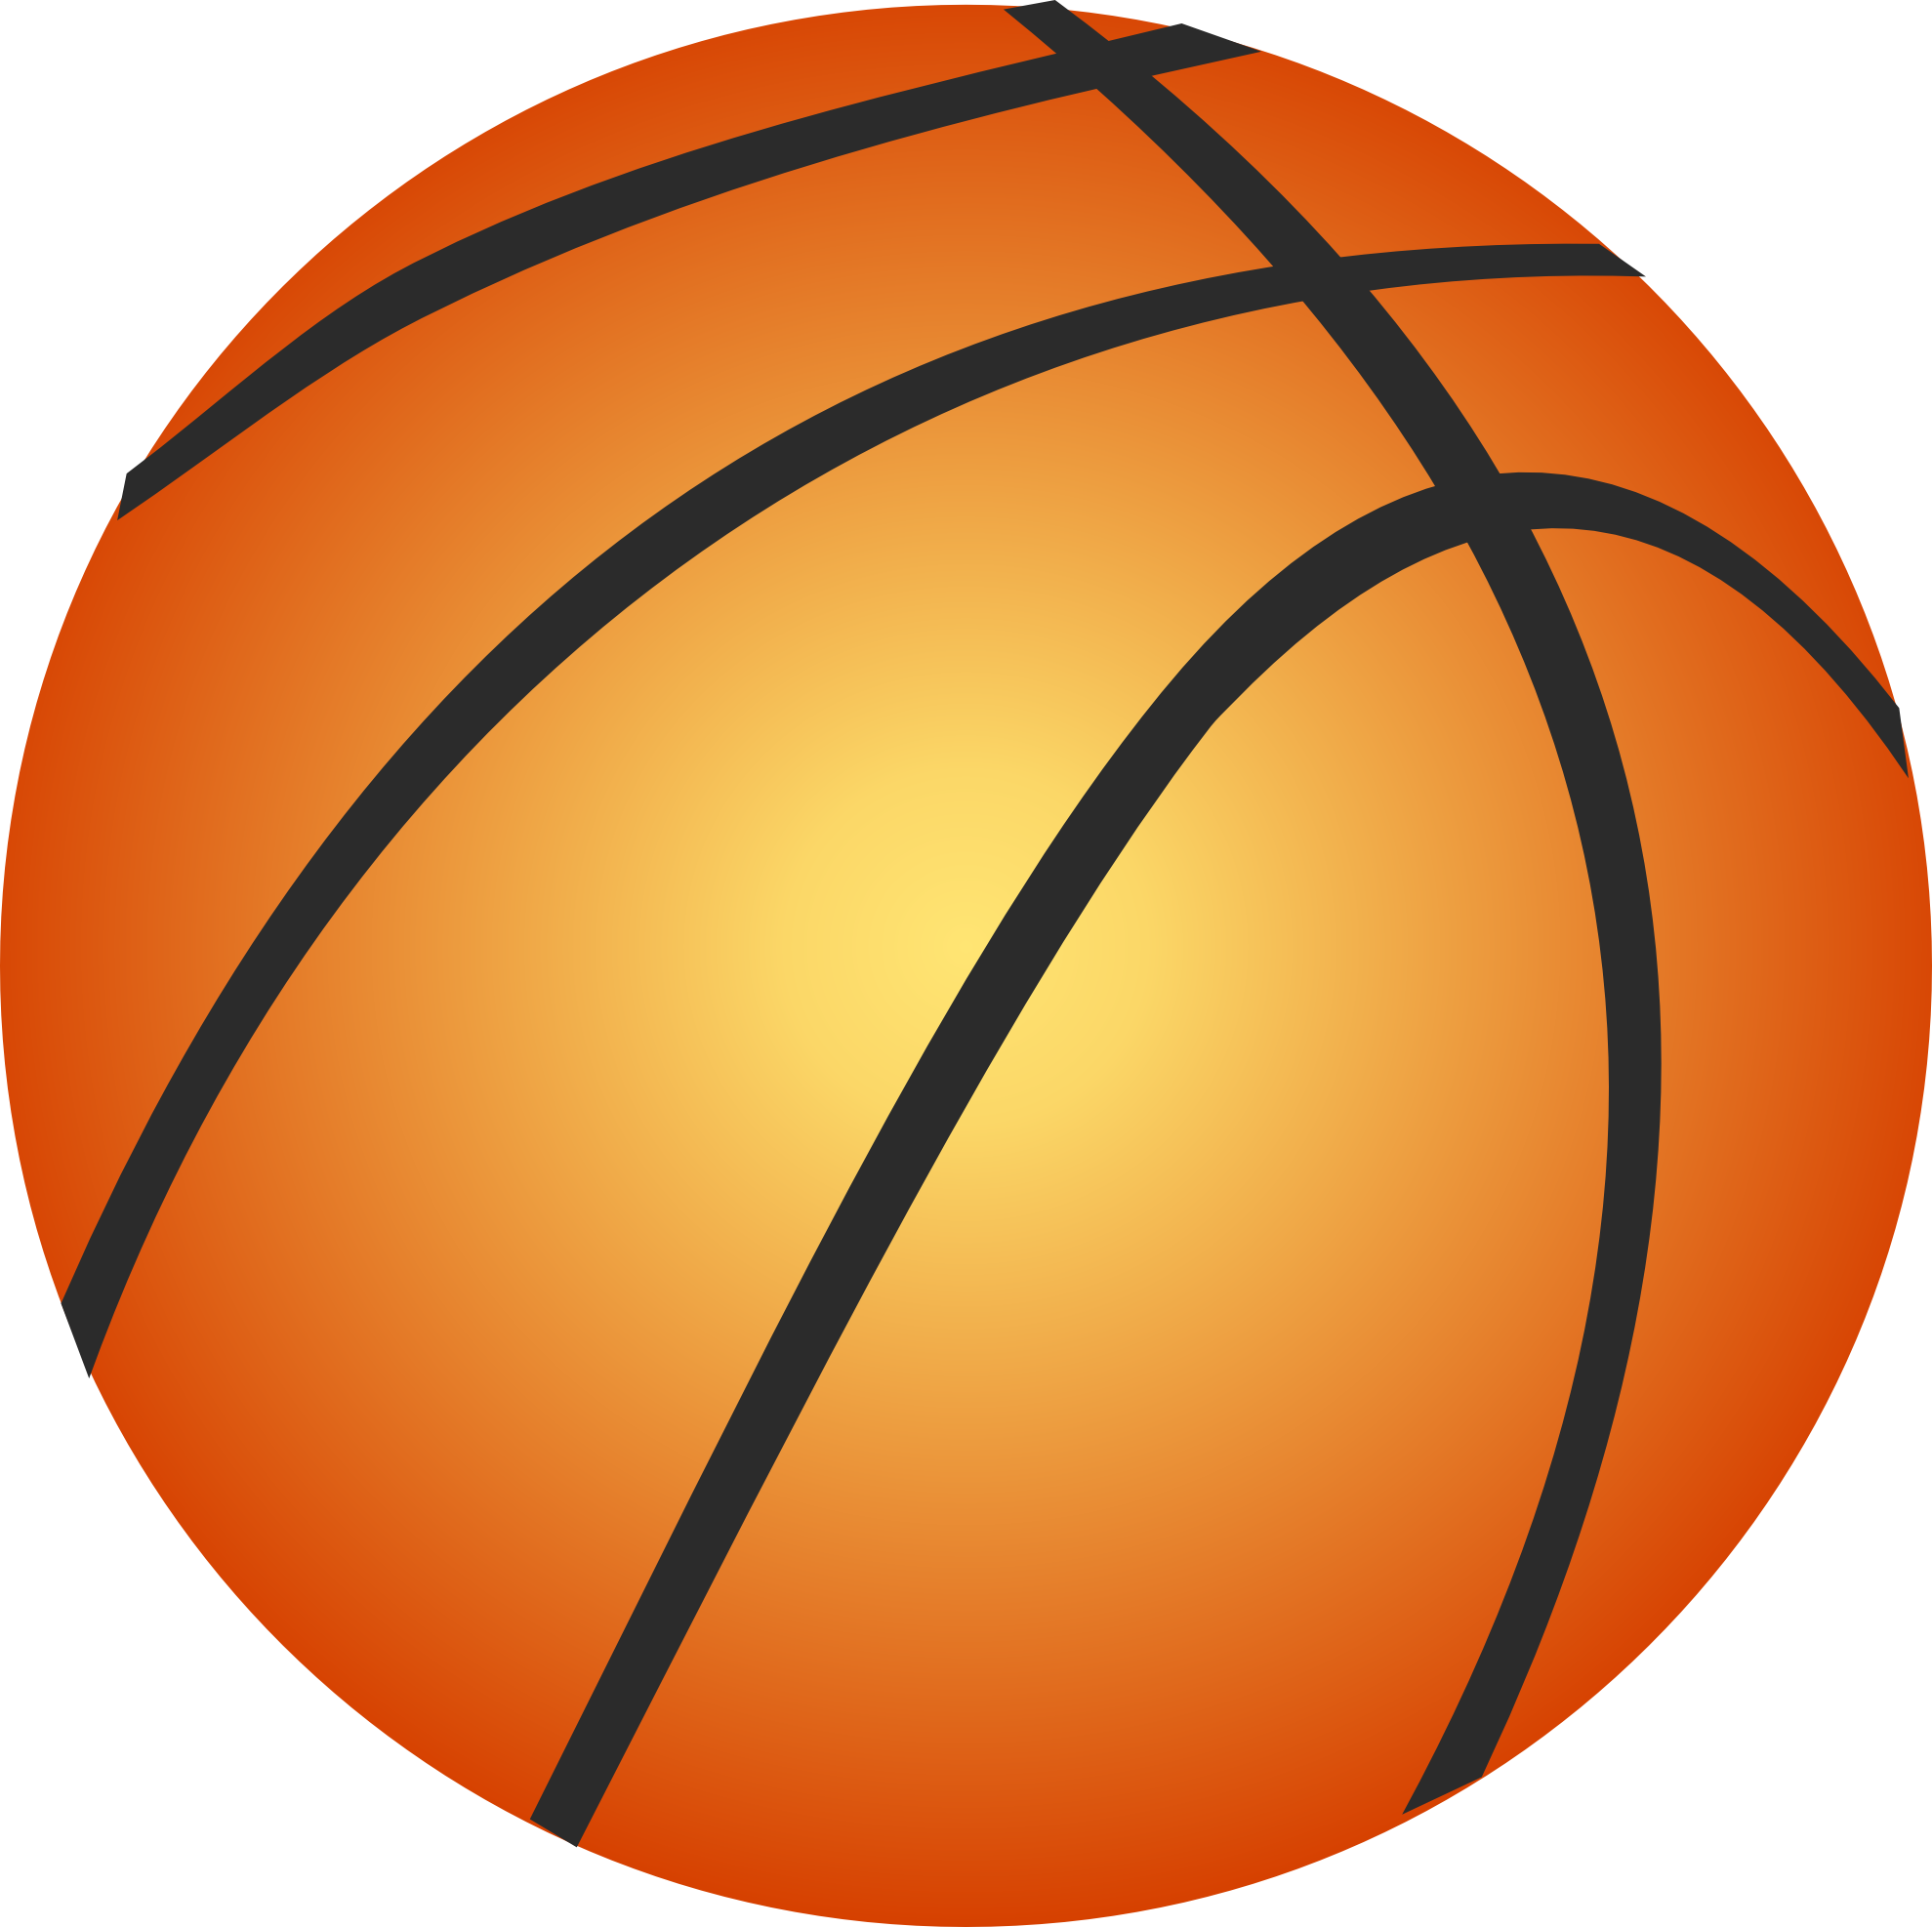 Bola pencil and in. Goal clipart basket ball